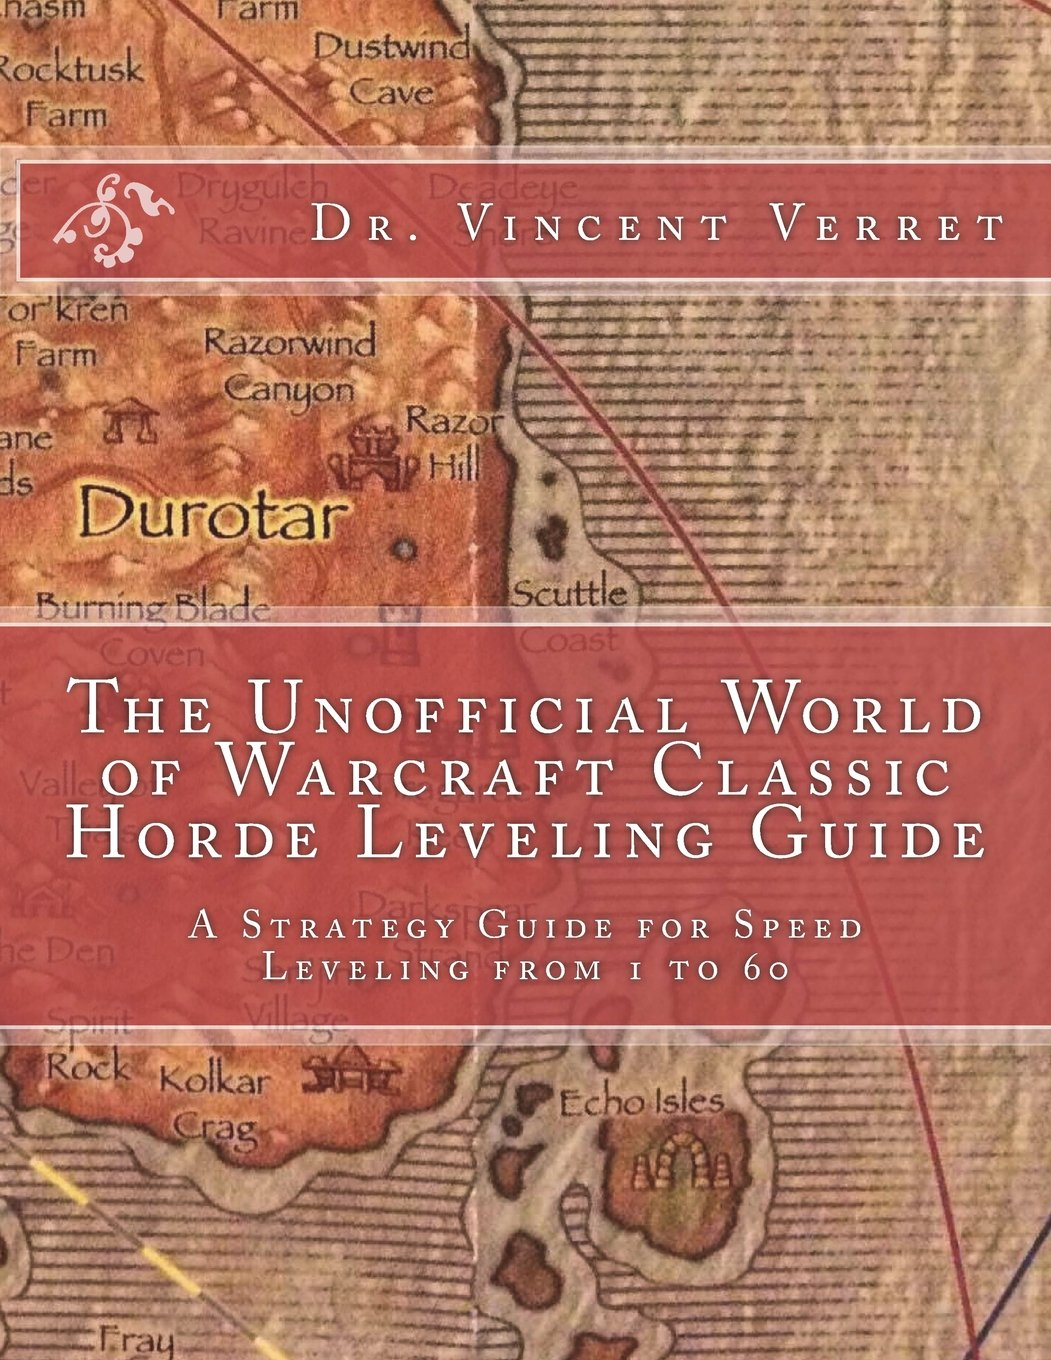 Download The Unofficial World of Warcraft Classic Horde Leveling Guide: A Strategy Guide for Speed Leveling from 1 to 60 (WoW Classic Unofficial Game Guides) pdf